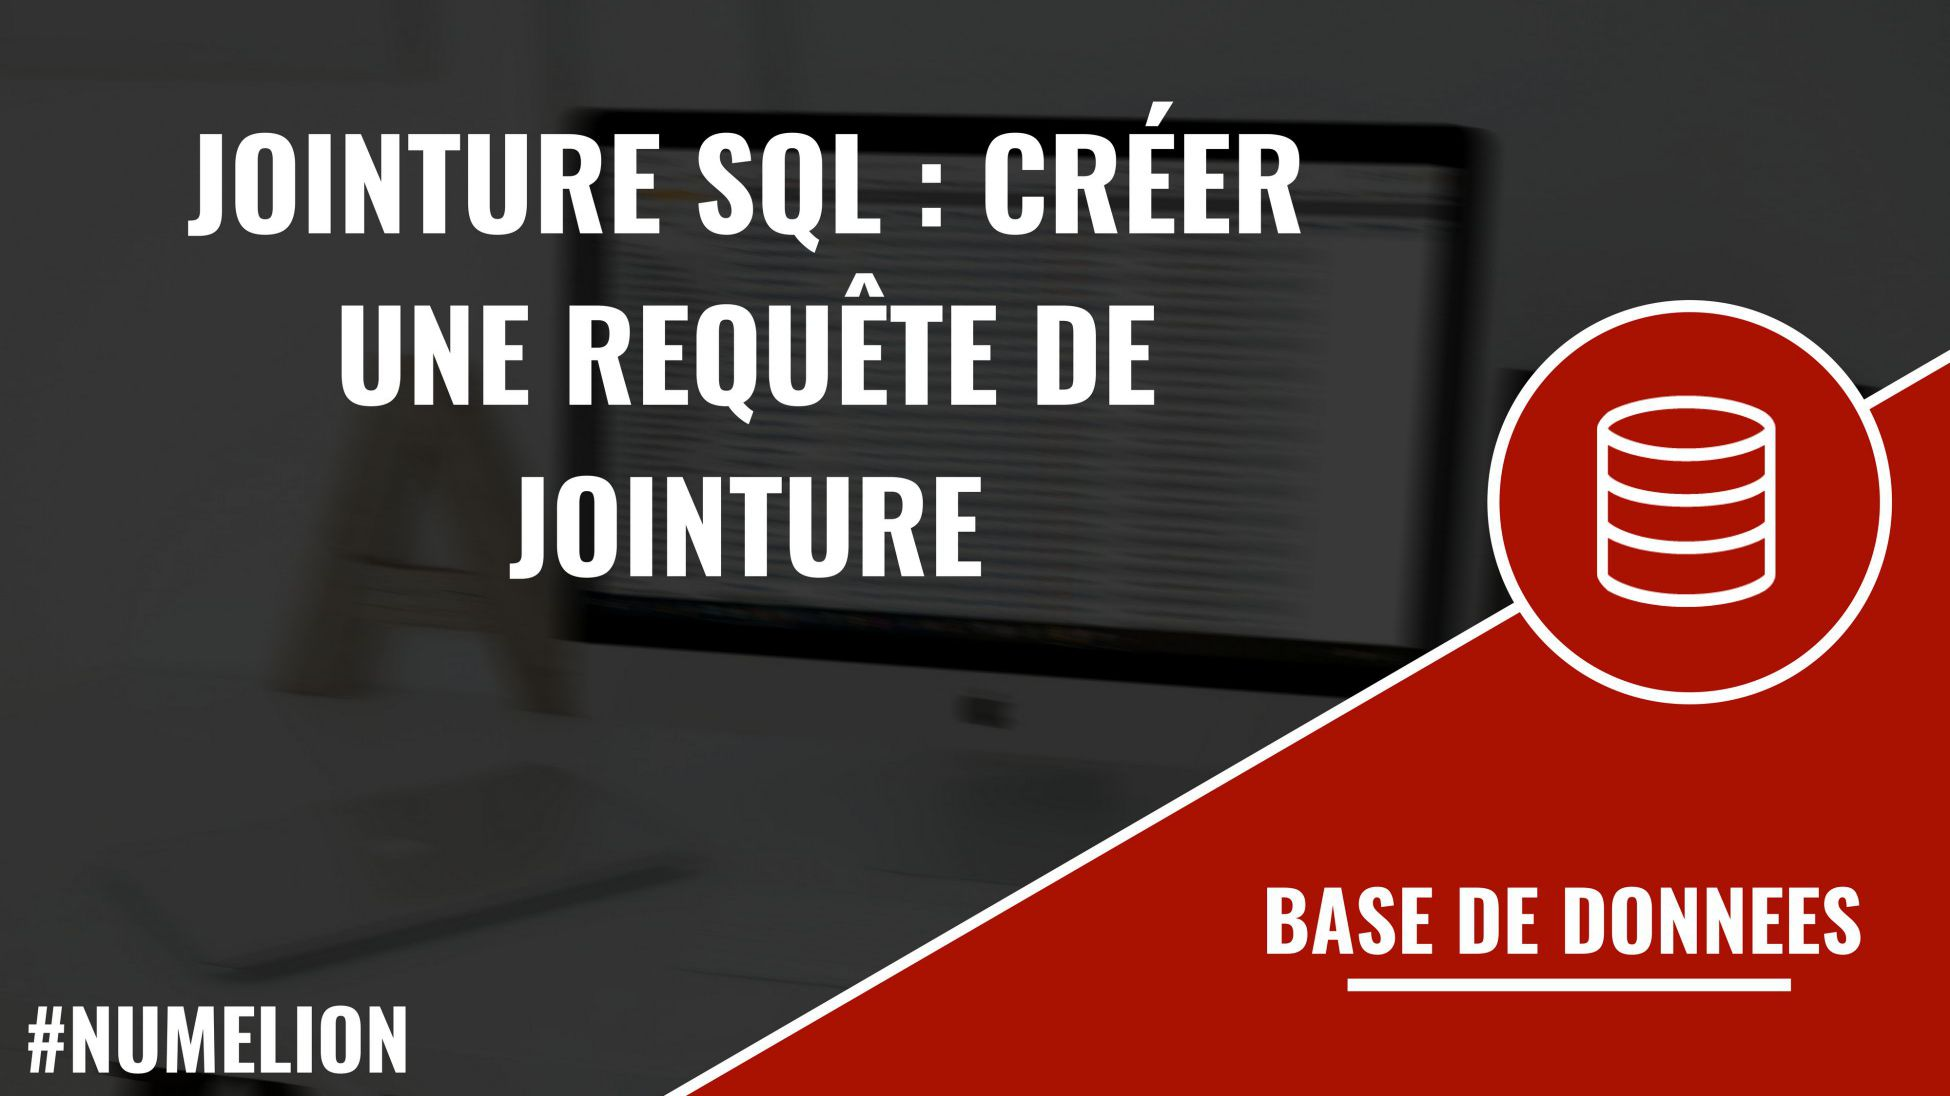 Jointure Sql Creer Une Requete De Jointure Simple